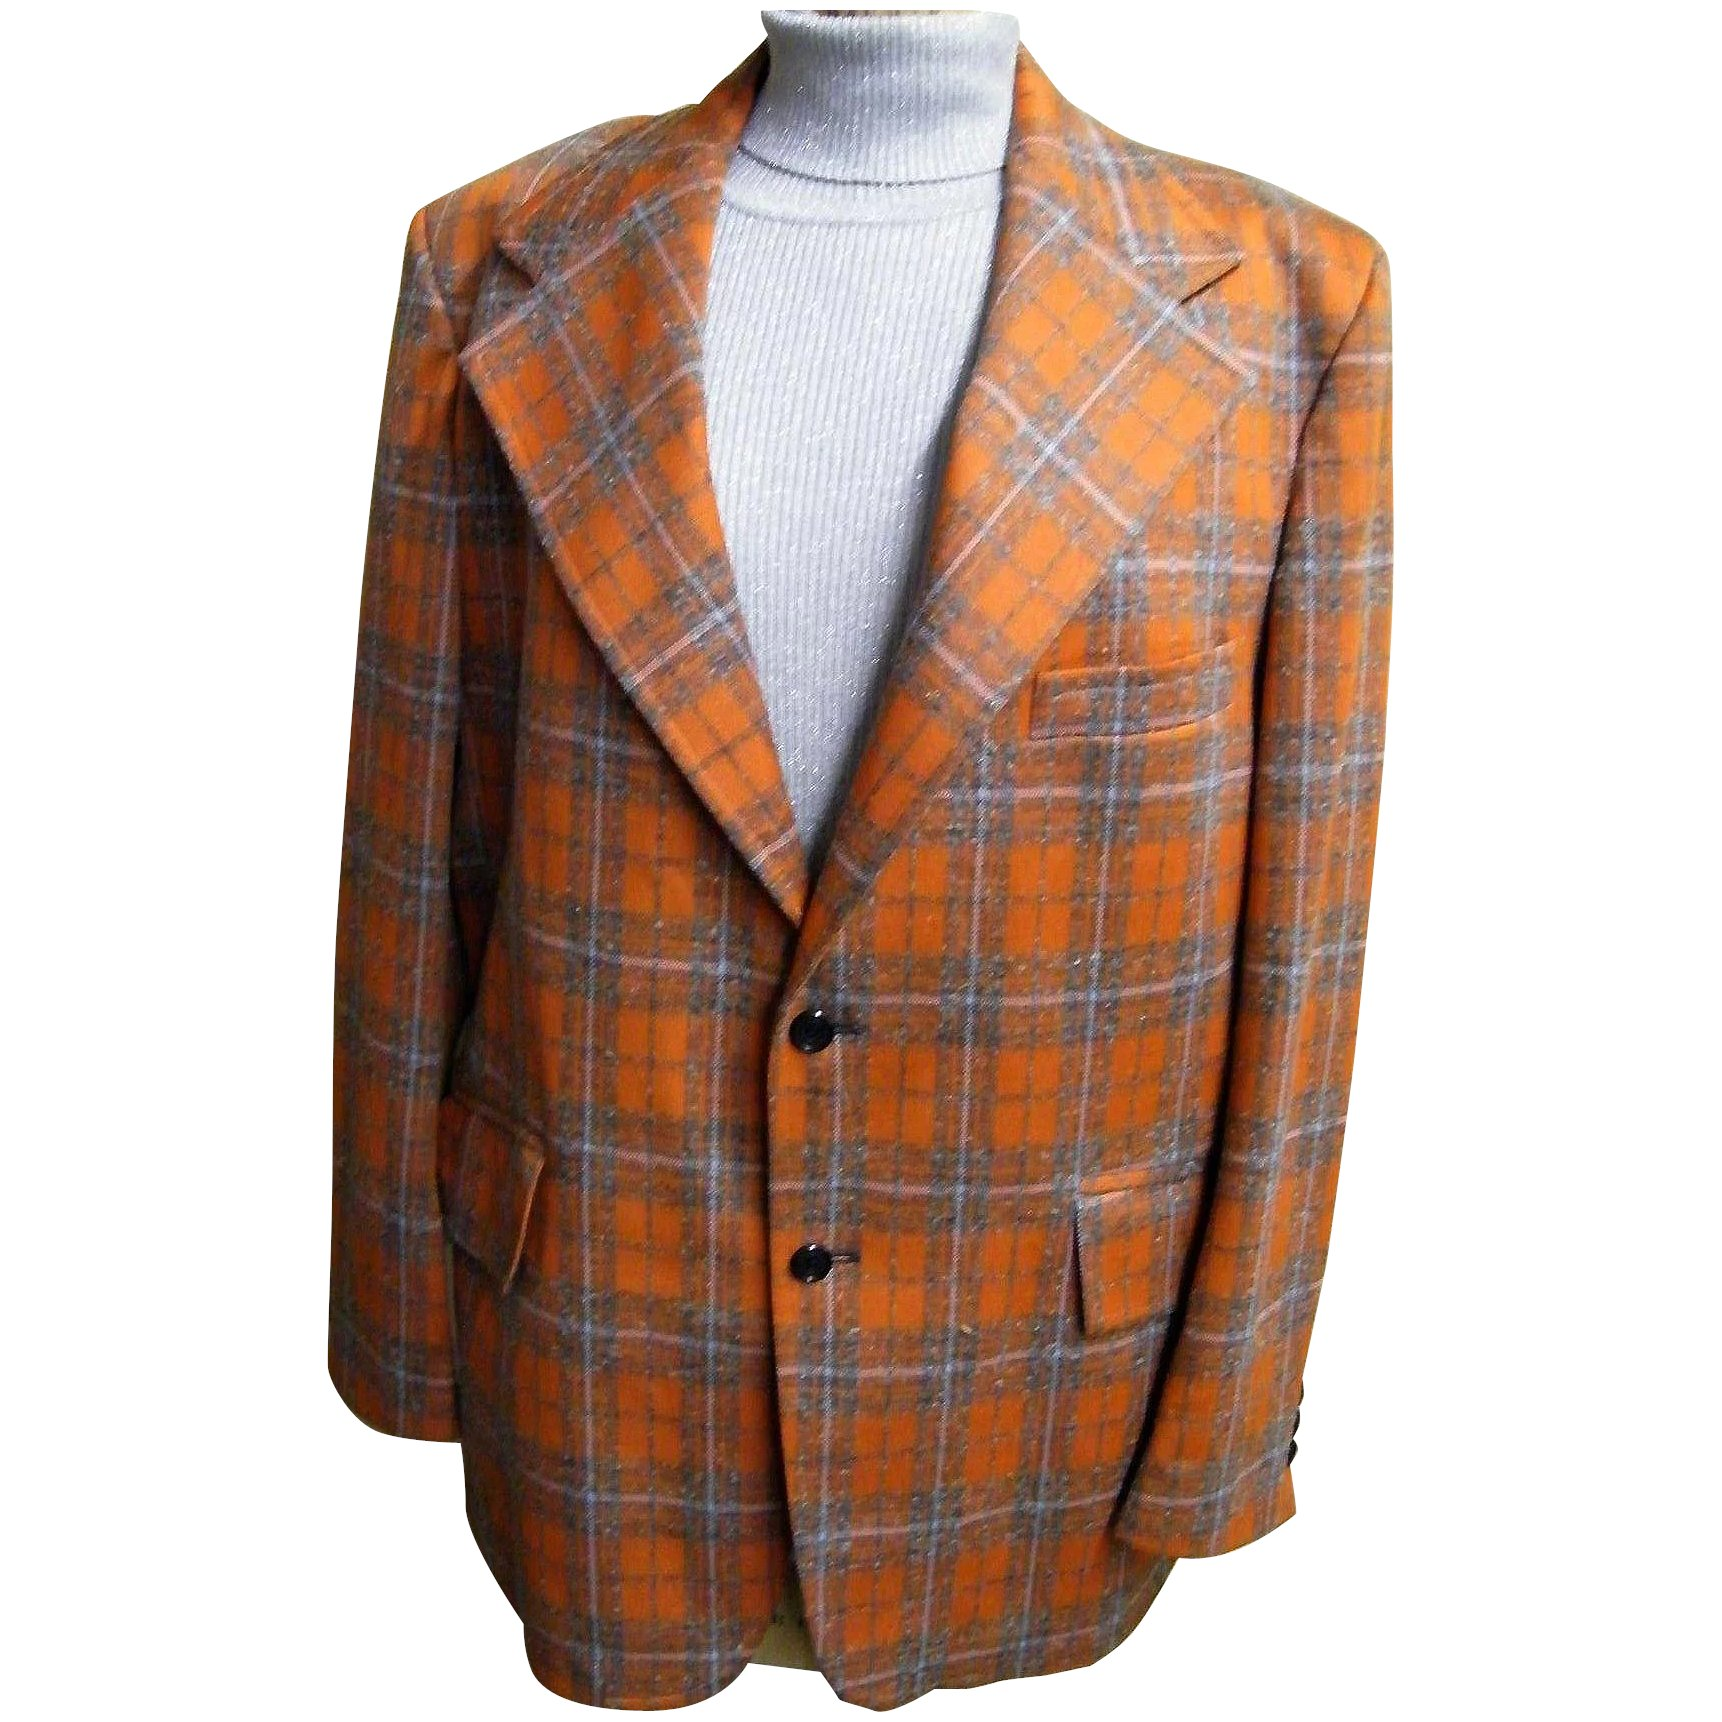 MEN's Orange & Beige Plaid Polyester Doubleknit Sports Jacket With : Lisa's  Vintage Treasures | Ruby Lane